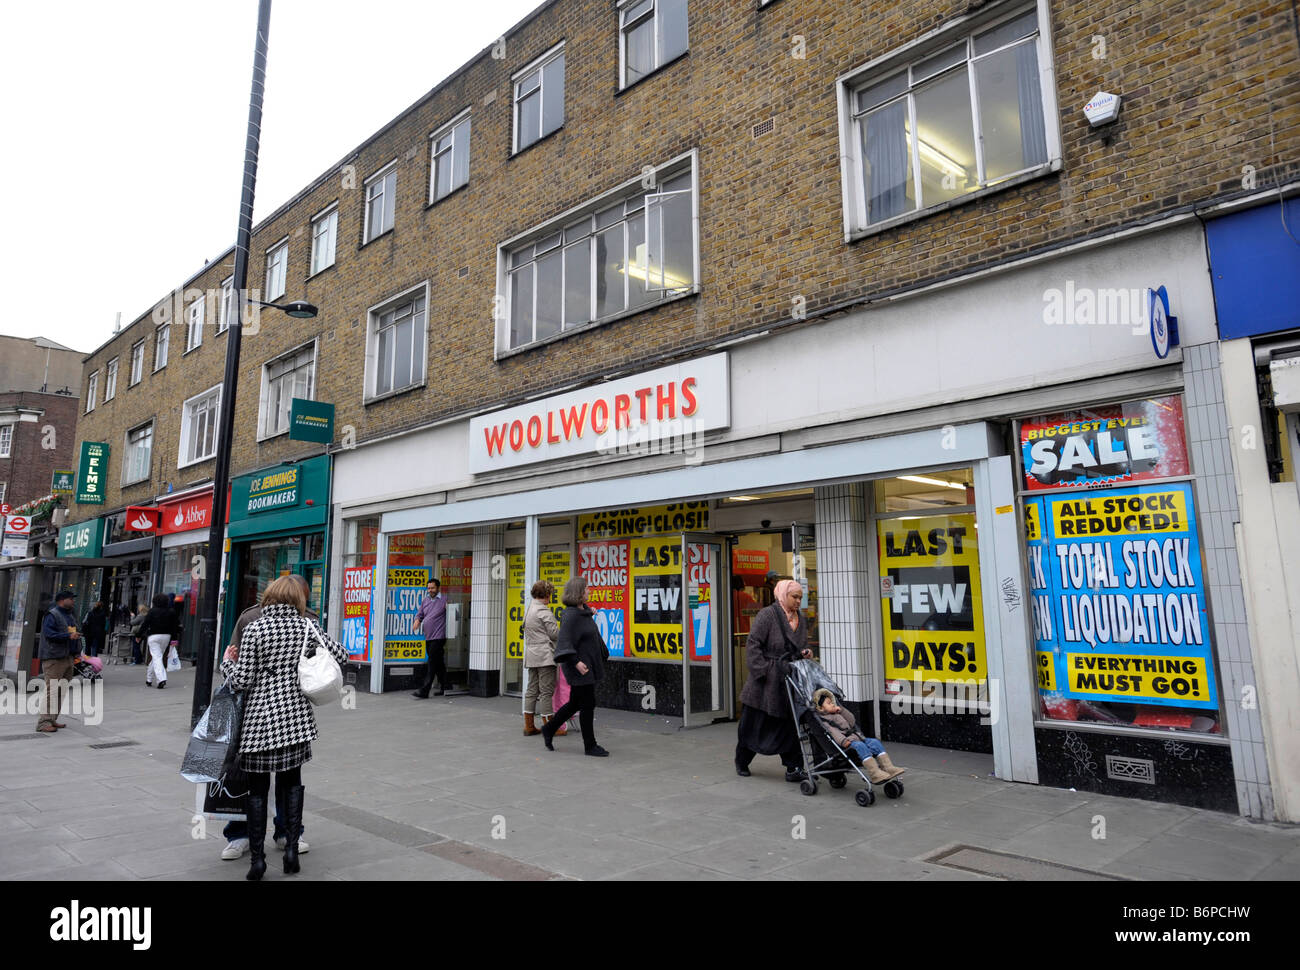 Woolworths exterior Bethnal Green Rd east London - Stock Image